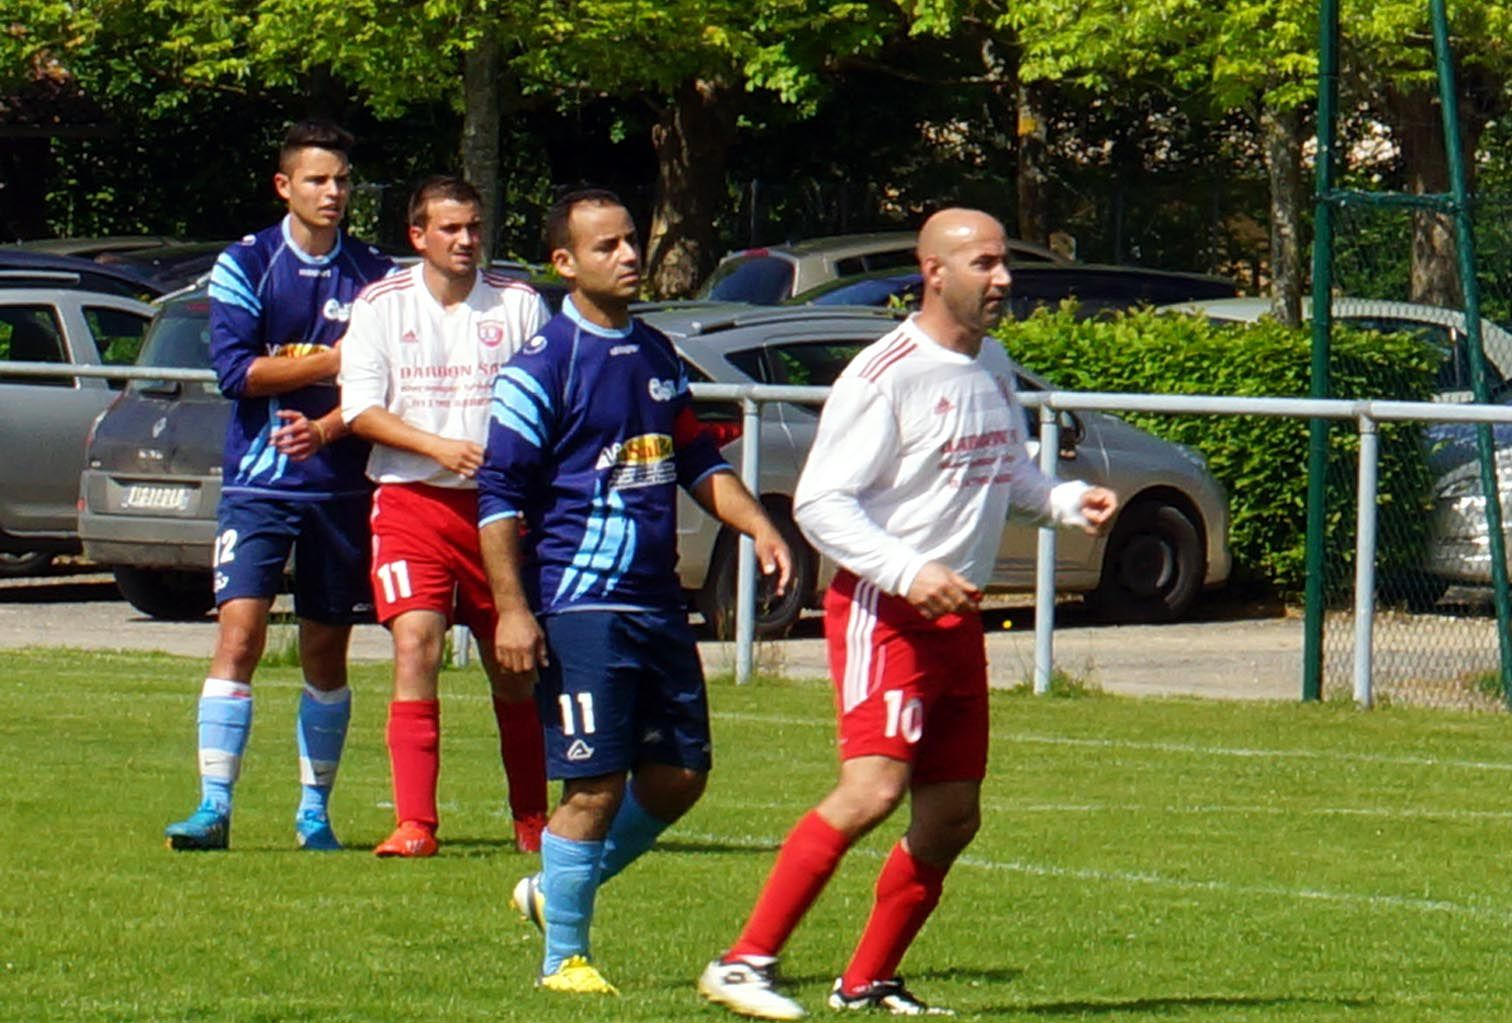 Football : Le match des occasions perdues